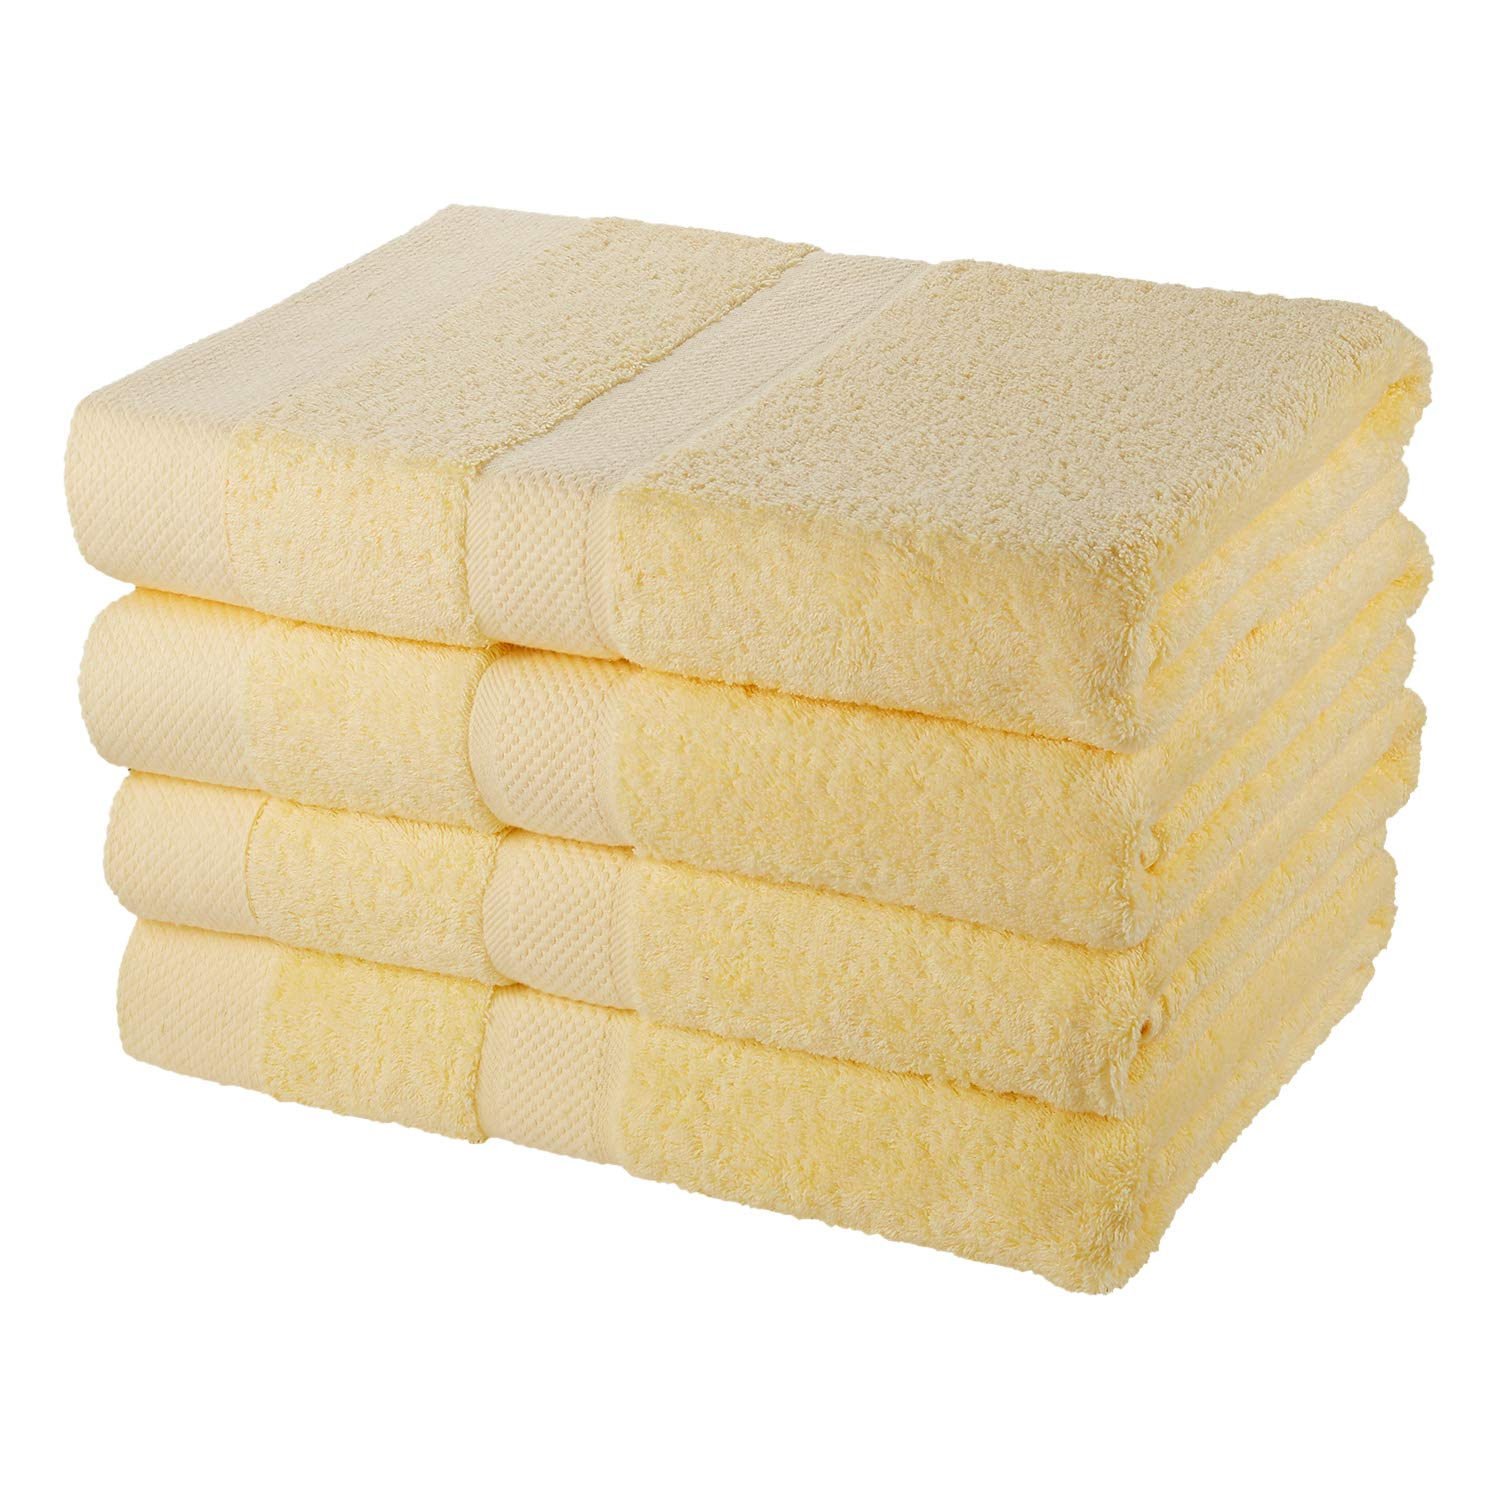 SEMAXE 4-Piece Bath Towel Set, 700GSM 30'' x 56'' 100% Cotton Hand Towels Super Absorbent Fade-Resistant (Yellow)